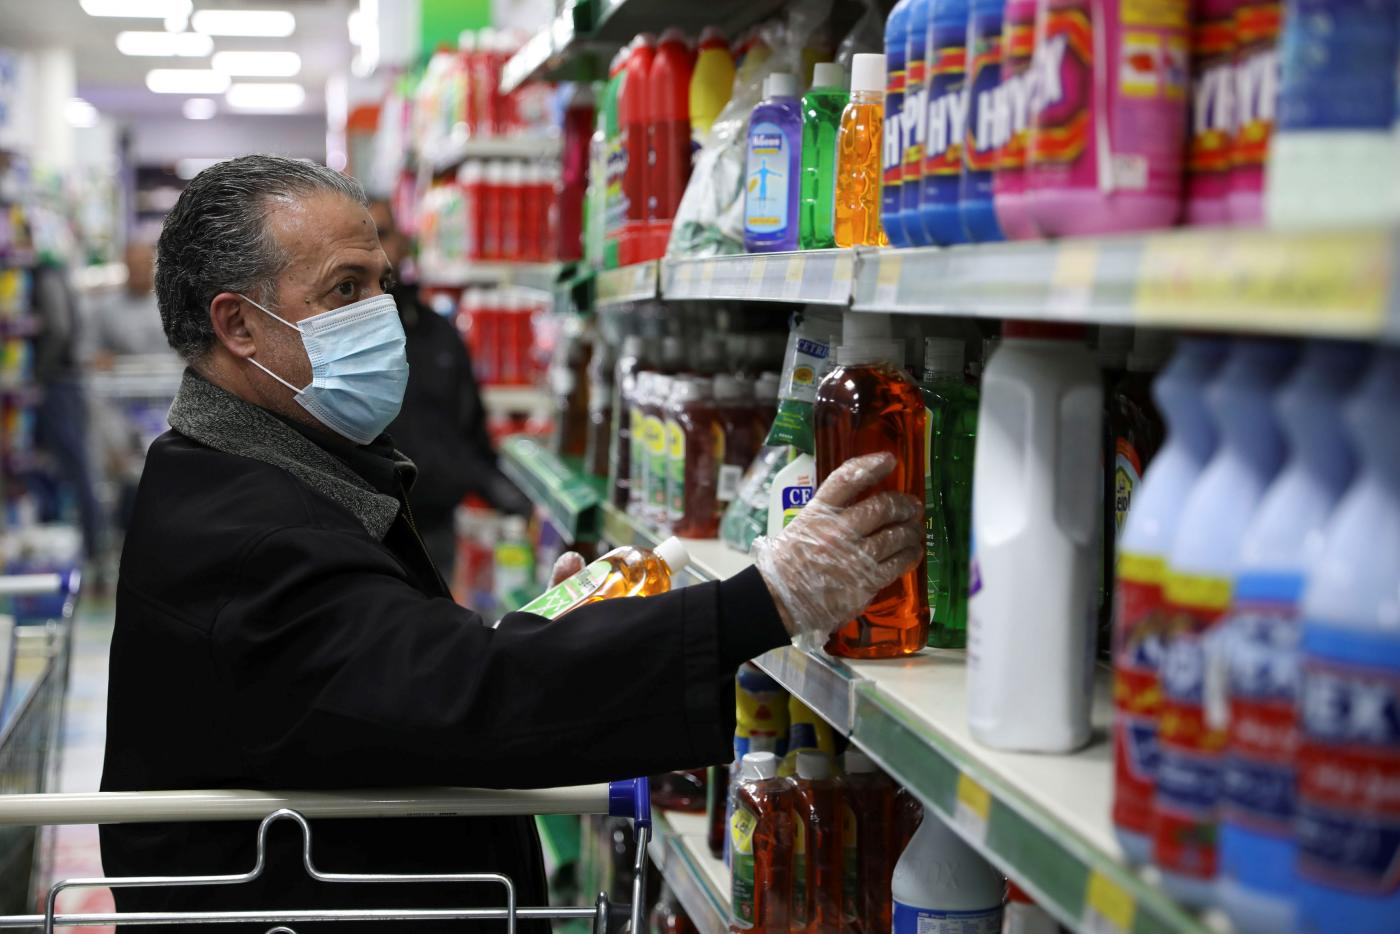 Man shopping in mask in supermarket in Jordan.